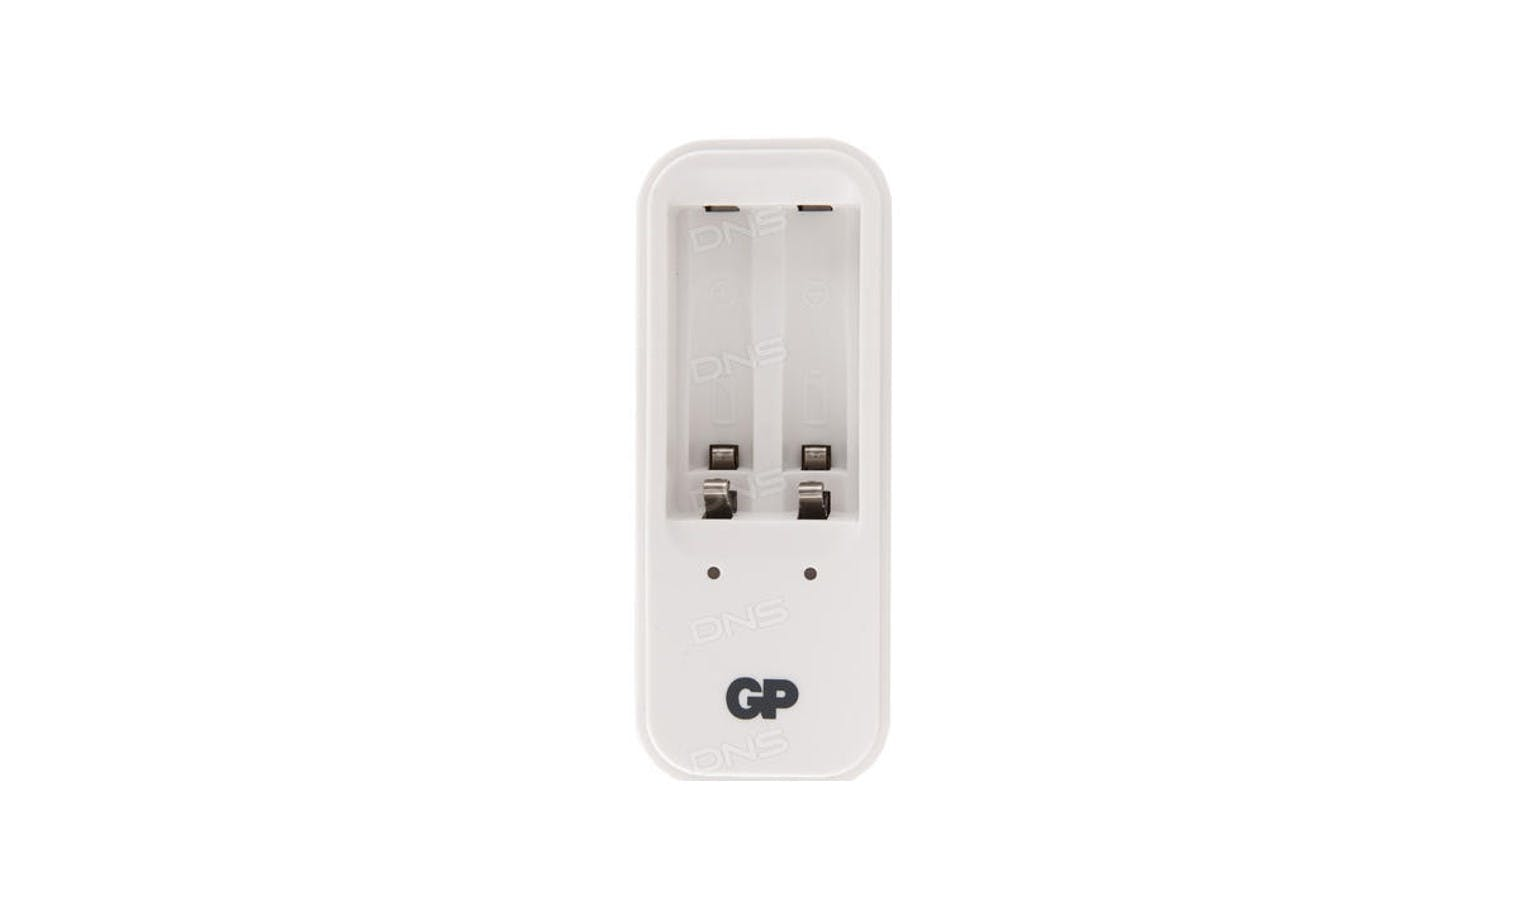 Gp Pb410 2pcs Aa 1000mah Recyko Rechargeable Battery Harvey